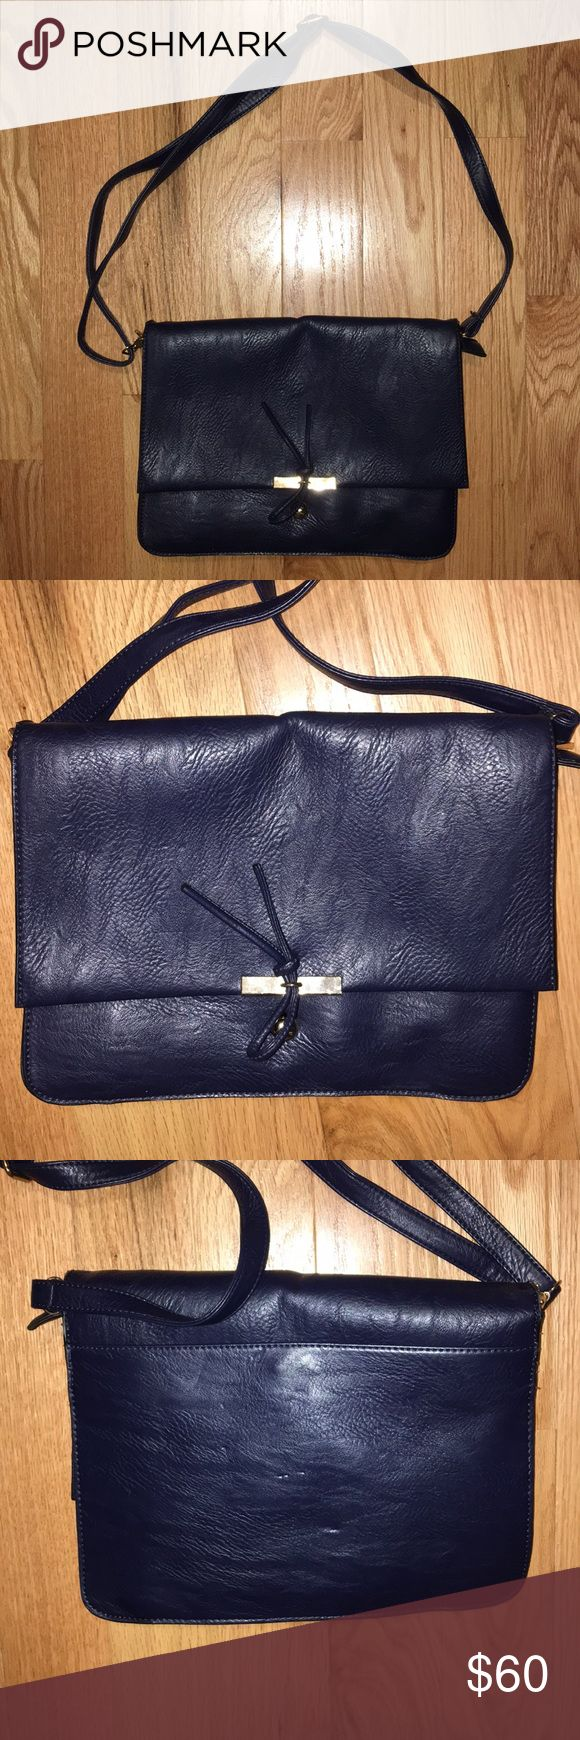 Premium Leather Bag Premium Leather Bags Soft navy leather in great condition barely used. Multiple pockets and zippers inside. Can also fit an iPad or 11 inch laptop. Price is negotiable! Let me know if you have any questions. Bags Crossbody Bags